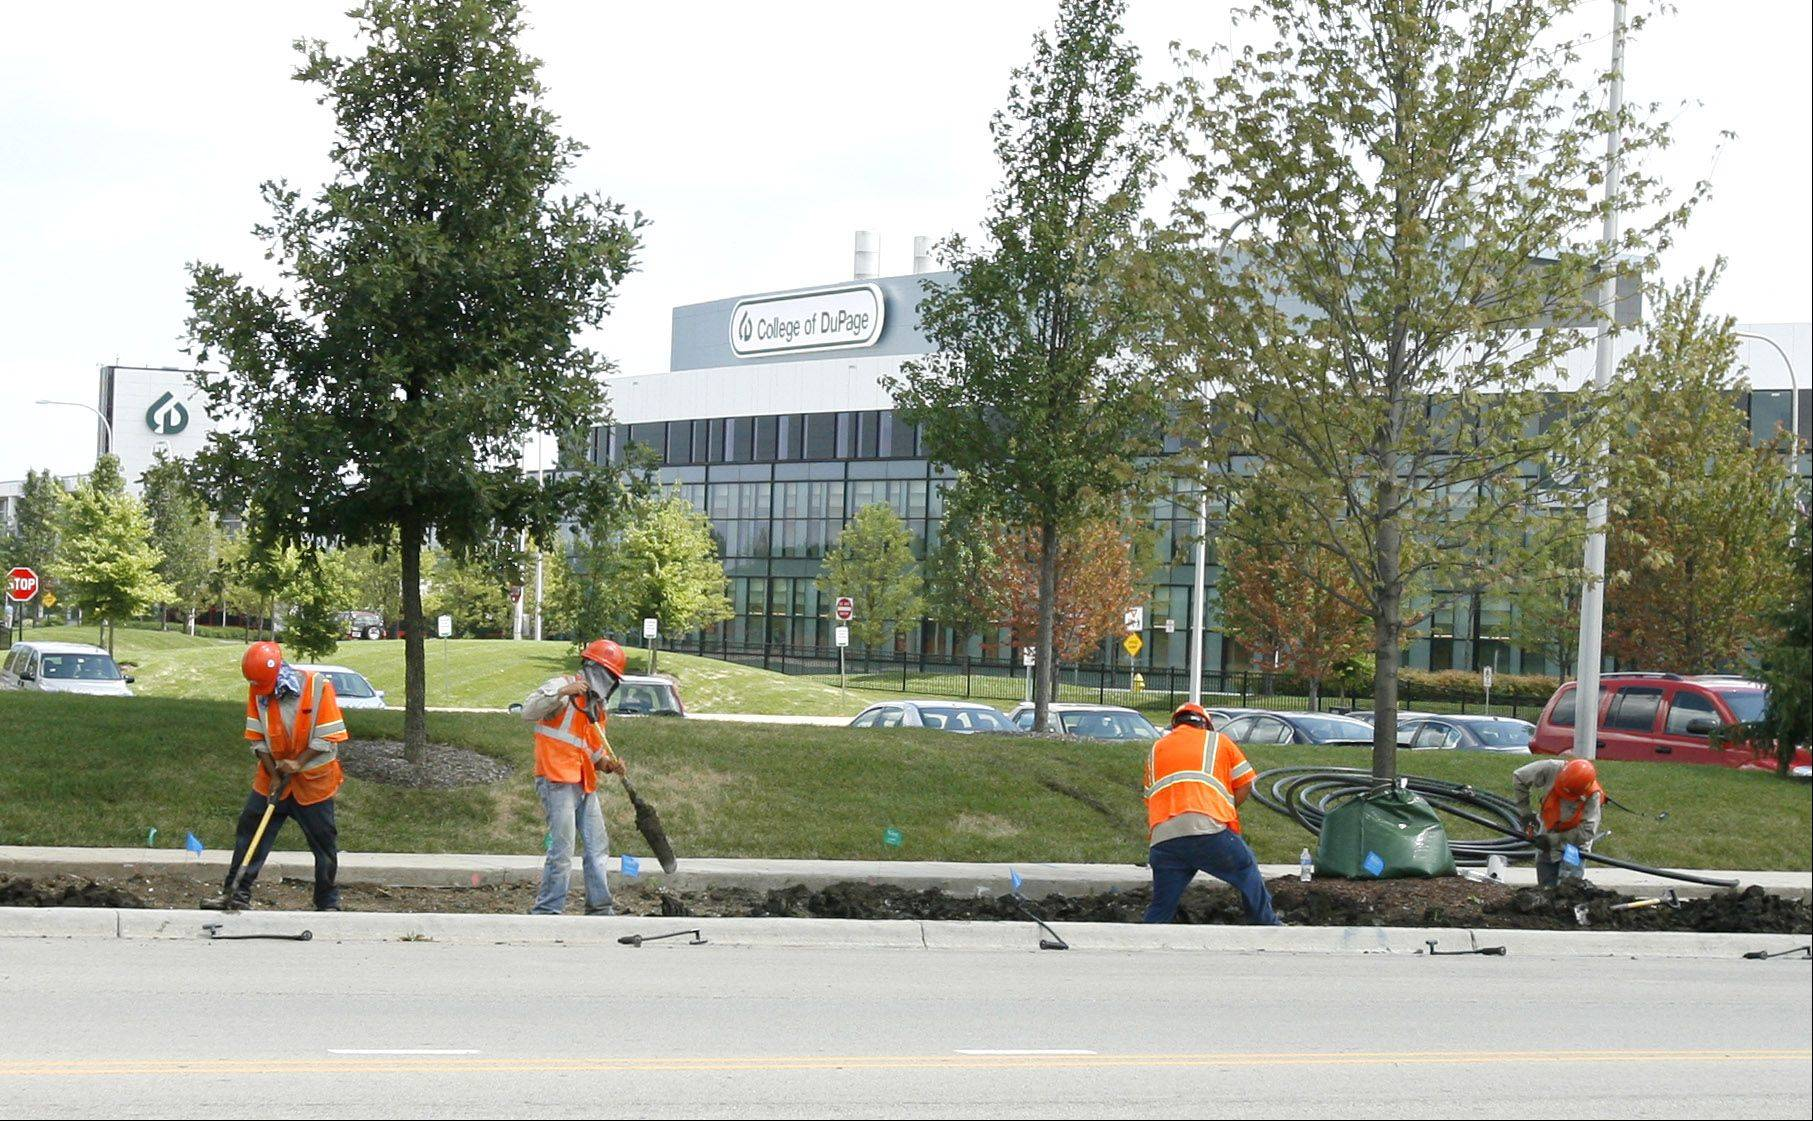 Members of the College of DuPage faculty senate say the administration is spending too much money on landscaping for the 273-acre Glen Ellyn campus, but COD President Robert Breuder says beautification efforts have led to enrollment growth.